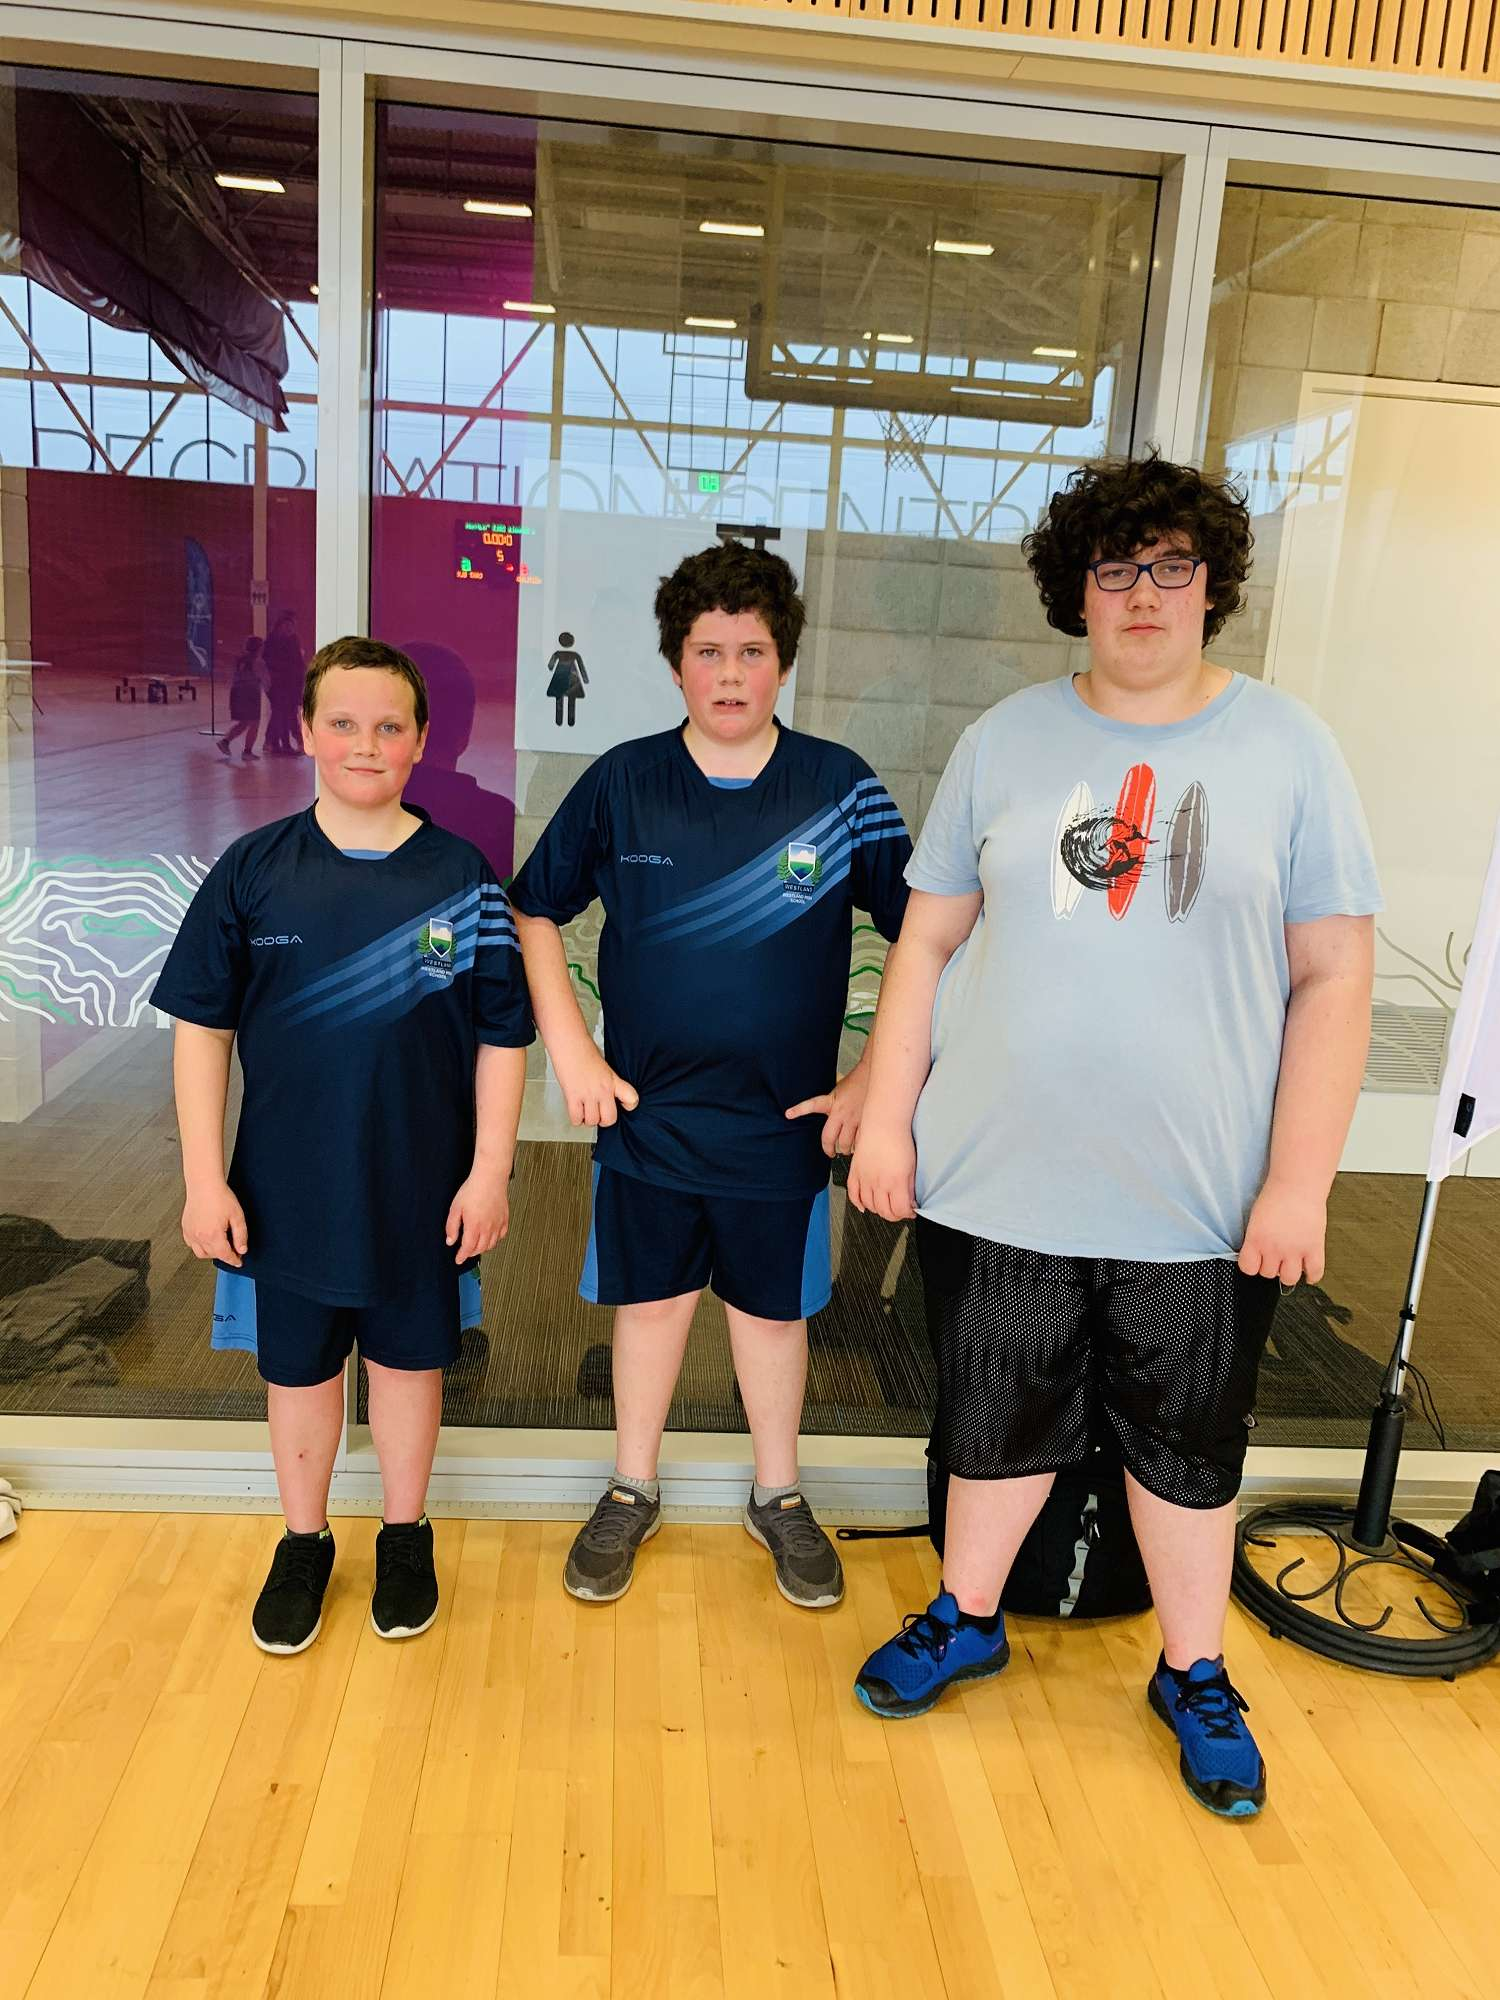 L. Hanright, K. Hopkinson, J. Billings at the 2019 West Coast Special Olympics